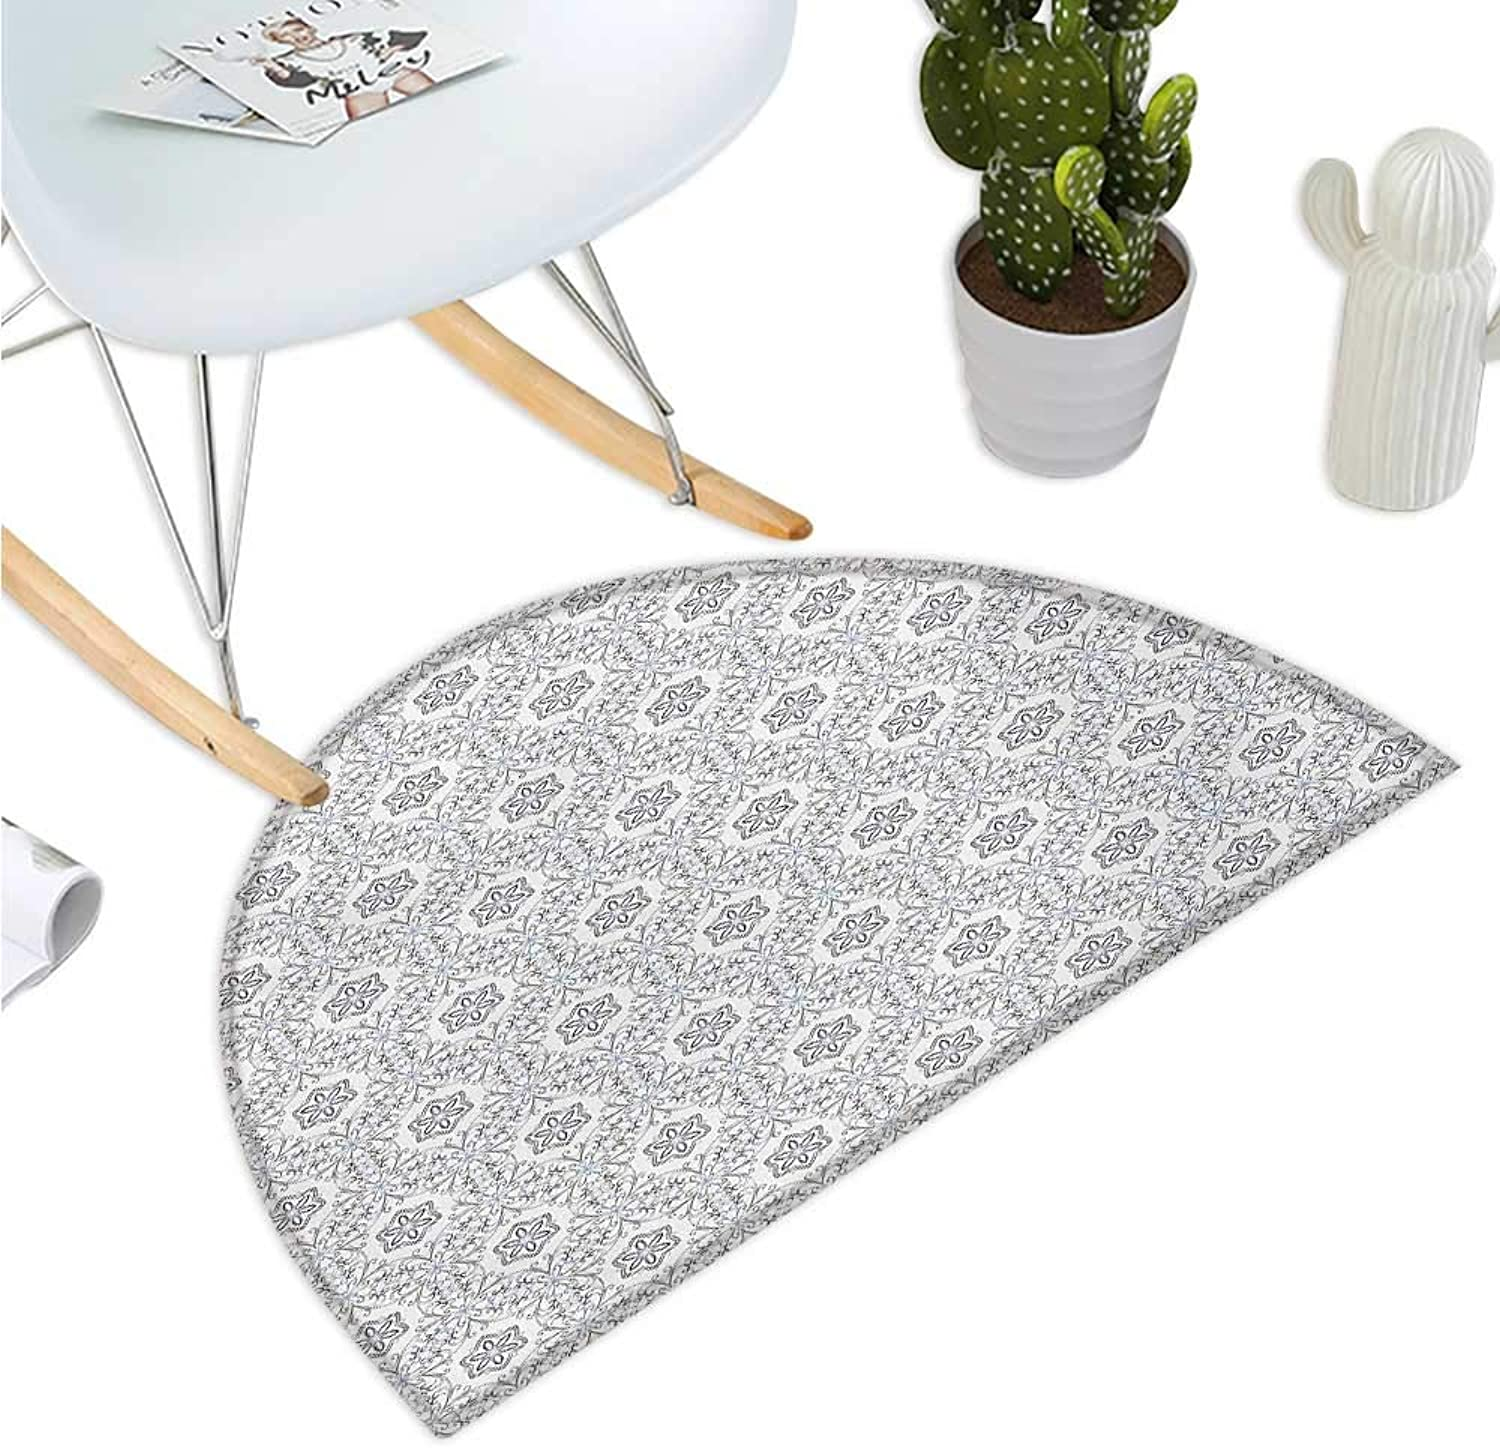 Floral Semicircular Cushion Scroll Style Pattern with Curled Leaf Motifs Abstract Modern Mosaic Tile Entry Door Mat H 51.1  xD 76.7  Black bluee and White